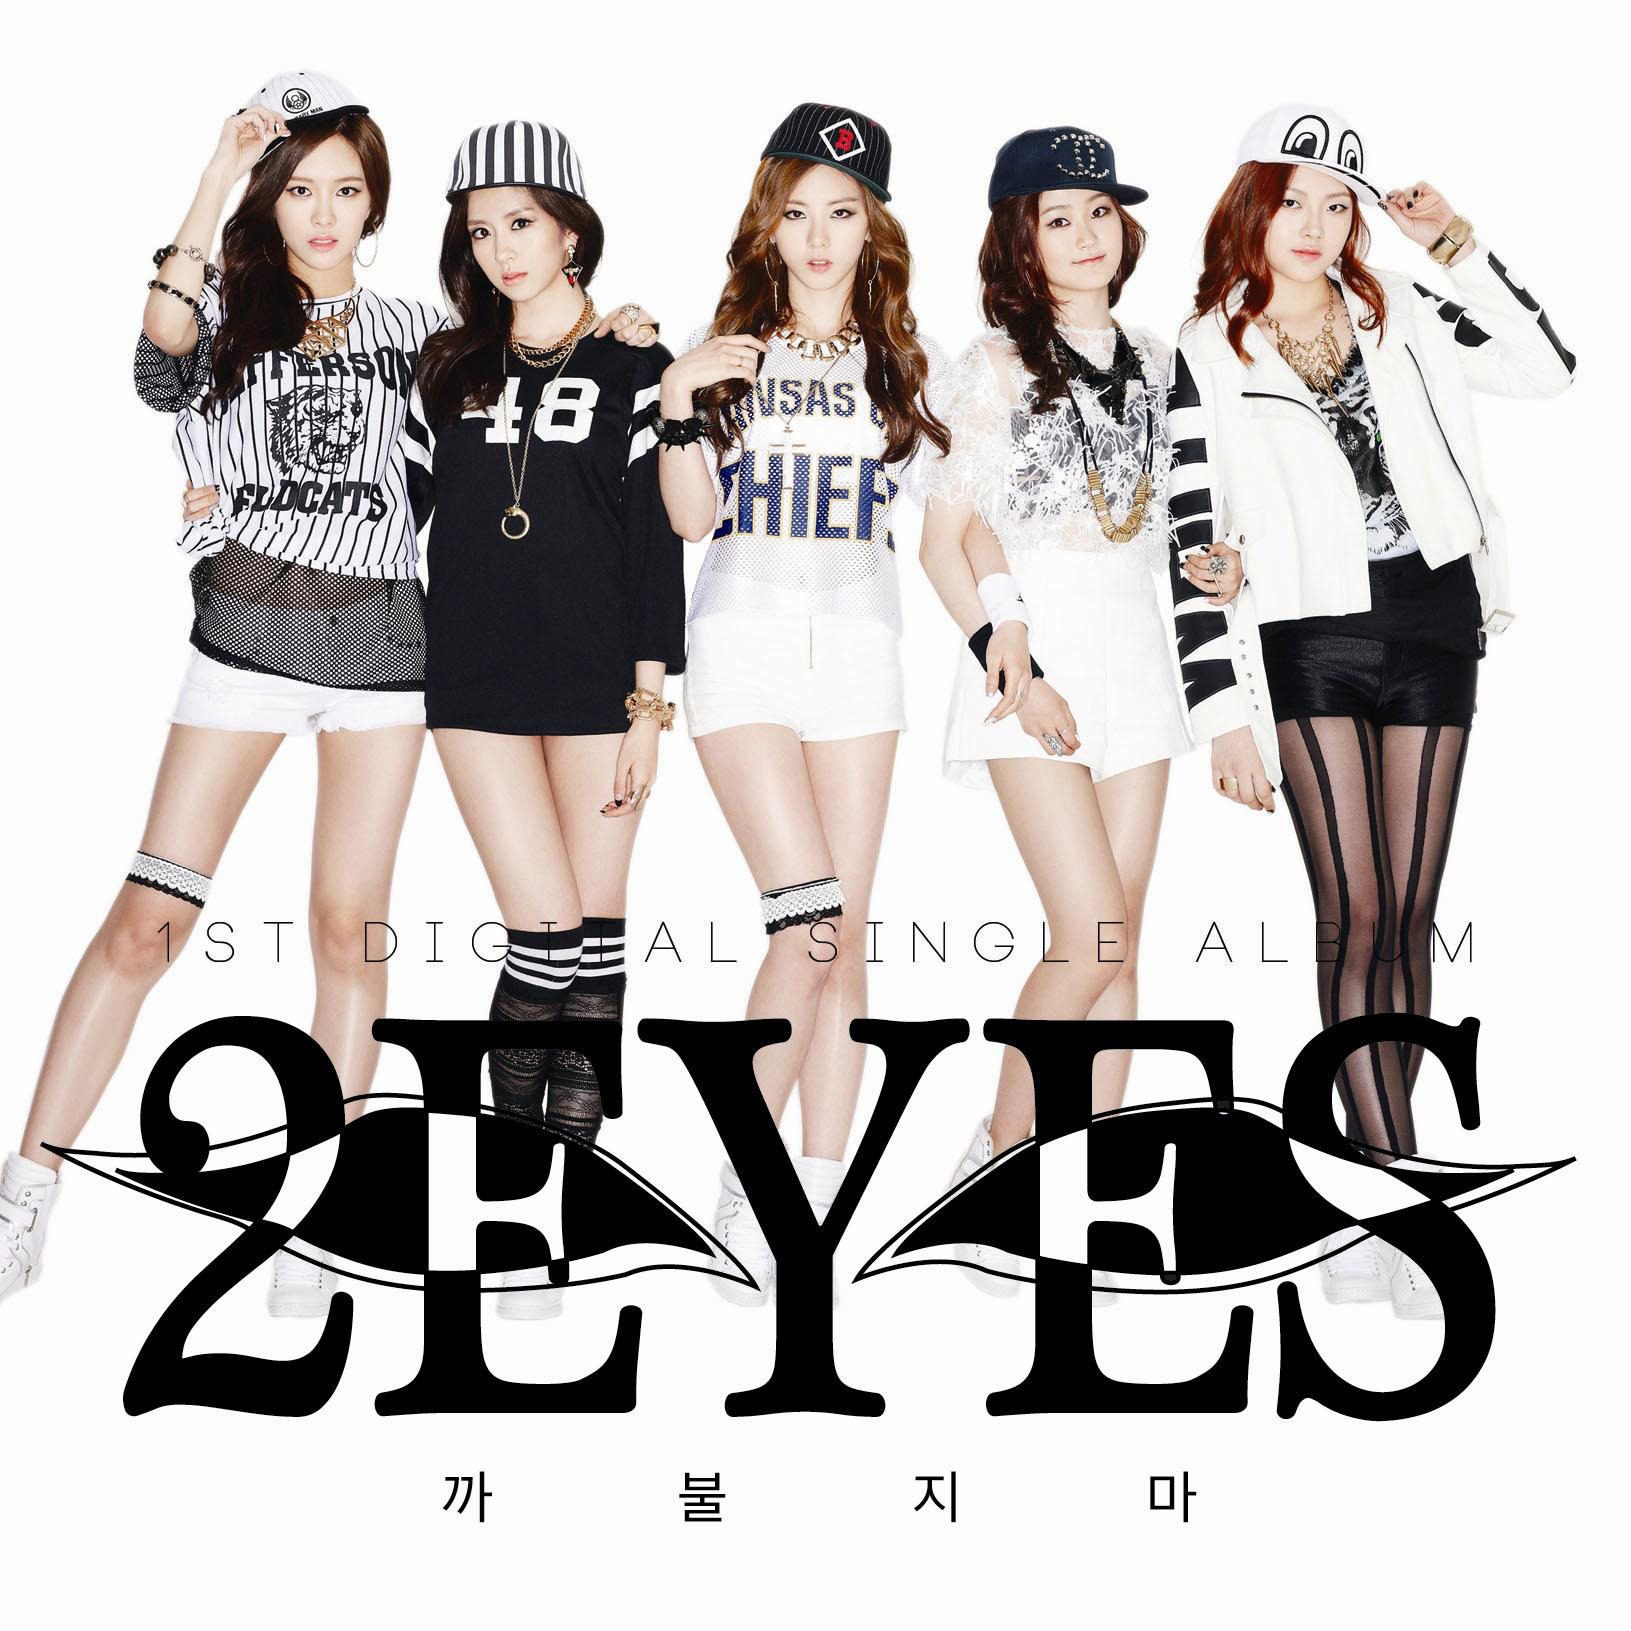 2EYES - Don't Mess With Me (까불지마) - Color Coded Lyrics